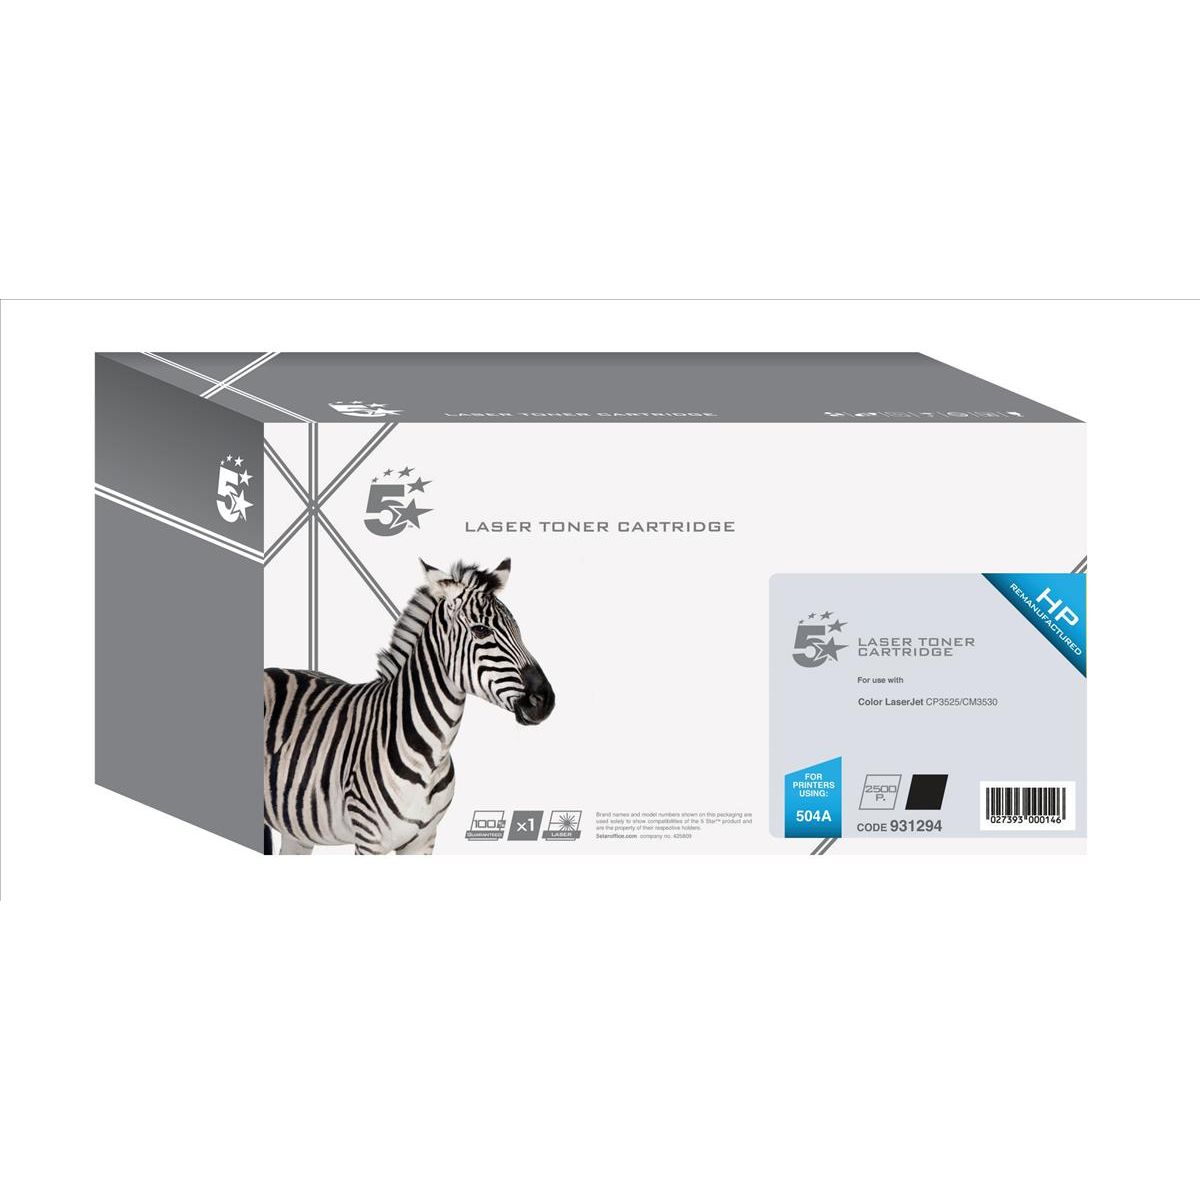 5 Star Office Remanufactured Laser Toner Cartridge 5000pp Black [HP 504A CE250A Alternative]